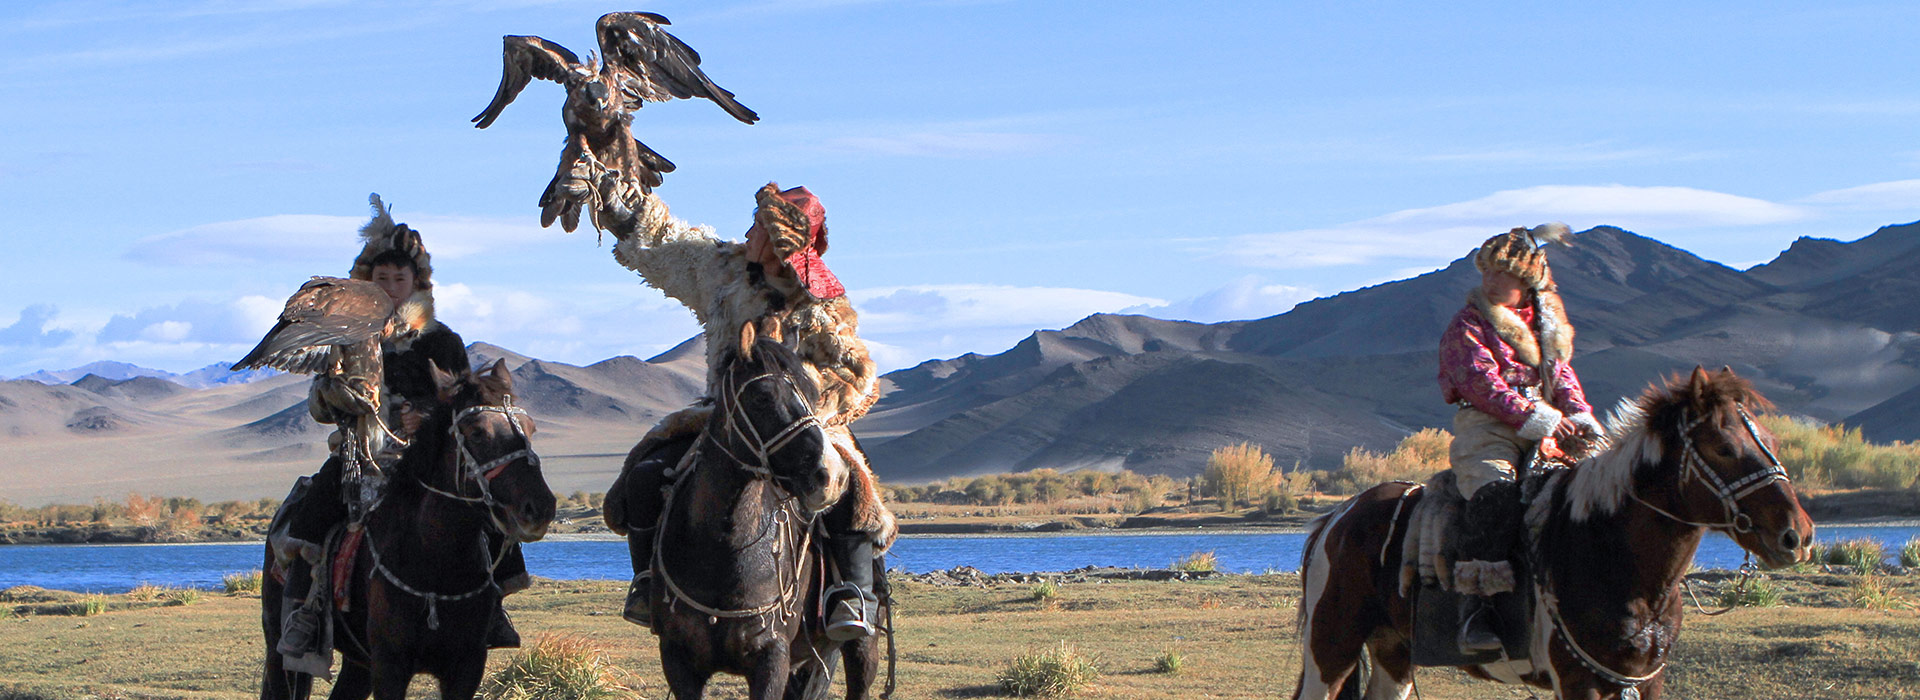 young-hunters-winter-eagle-festival